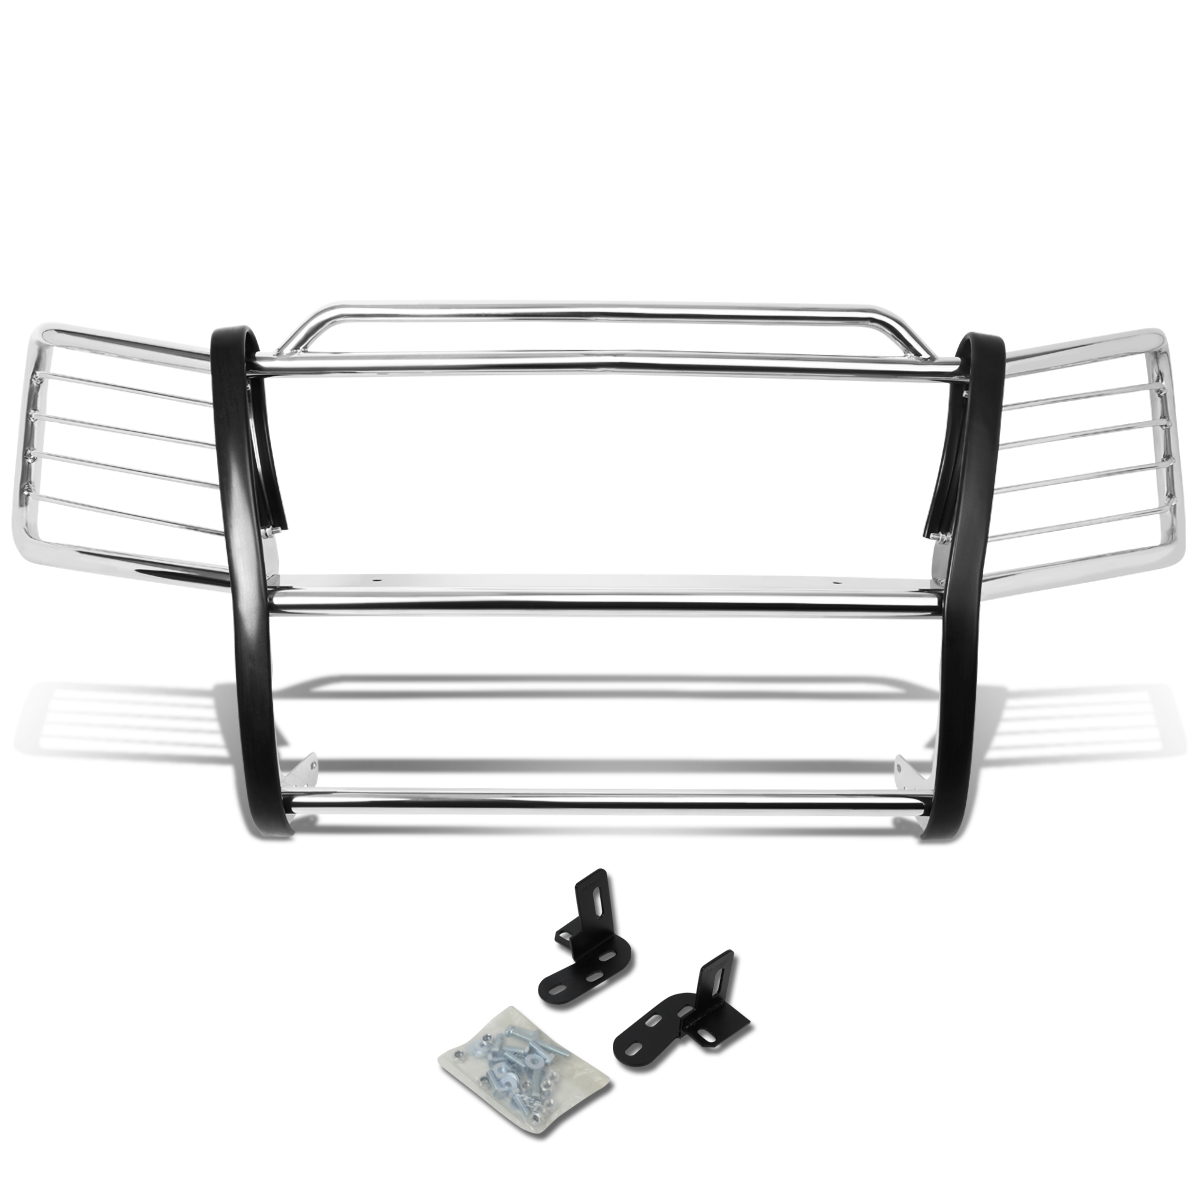 For 02-06 Chevy Avalanche with Cladding Front Bumper Protector Brush Grille Guard (Chrome) 03 04 05